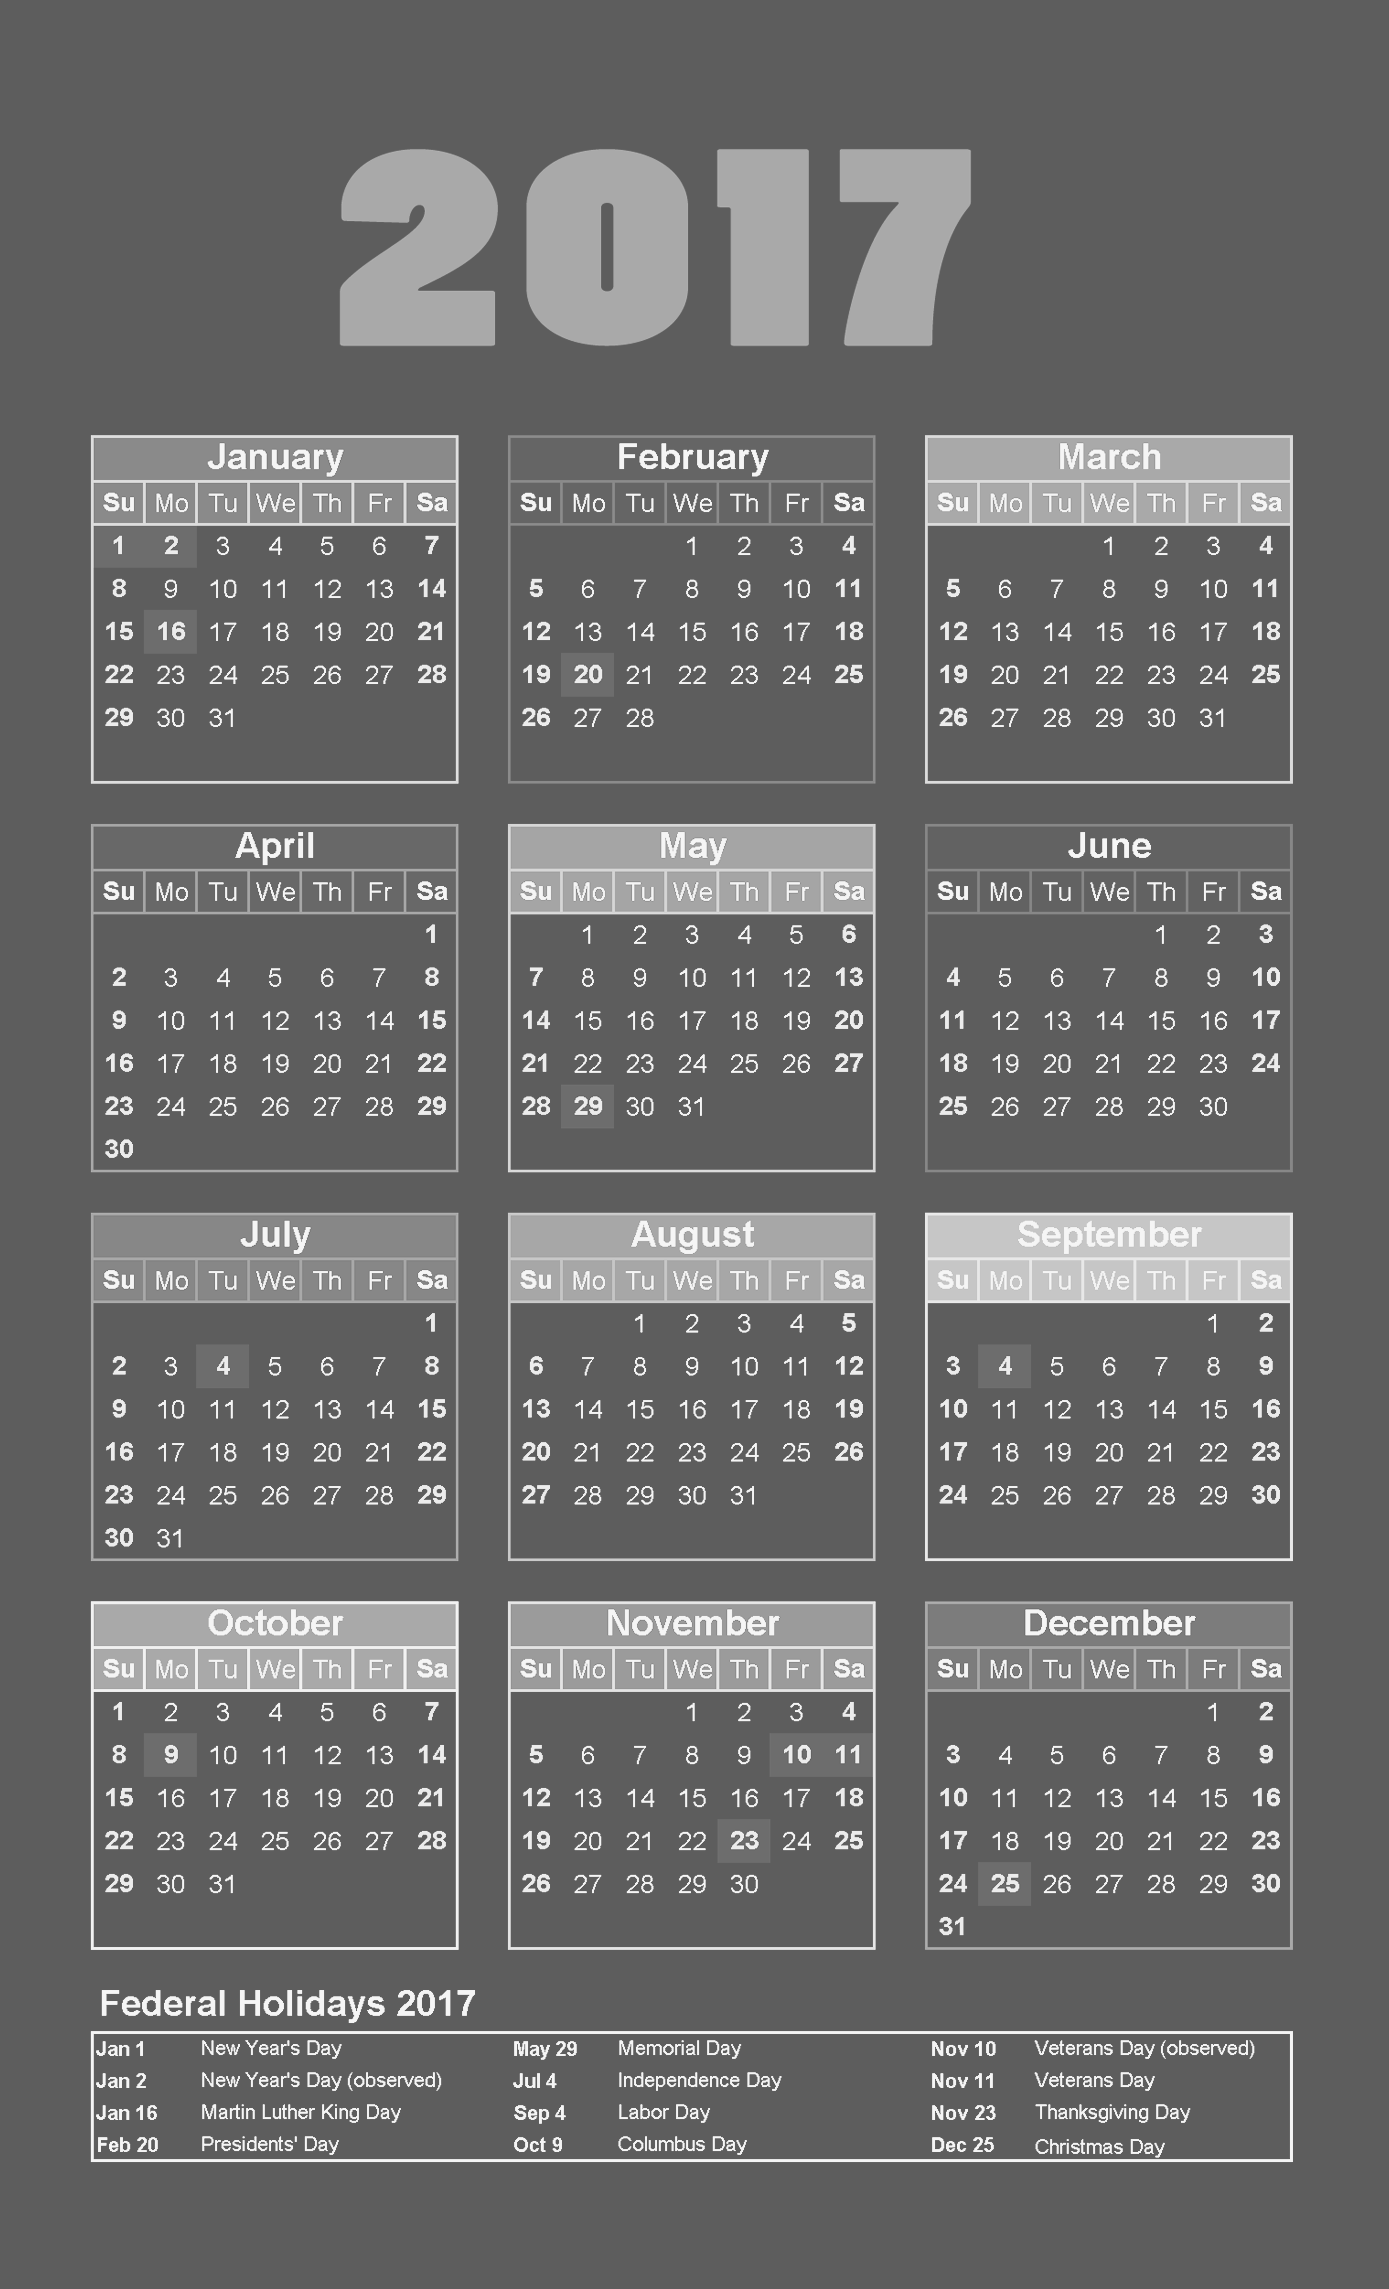 2017 calendar dark grey colour background